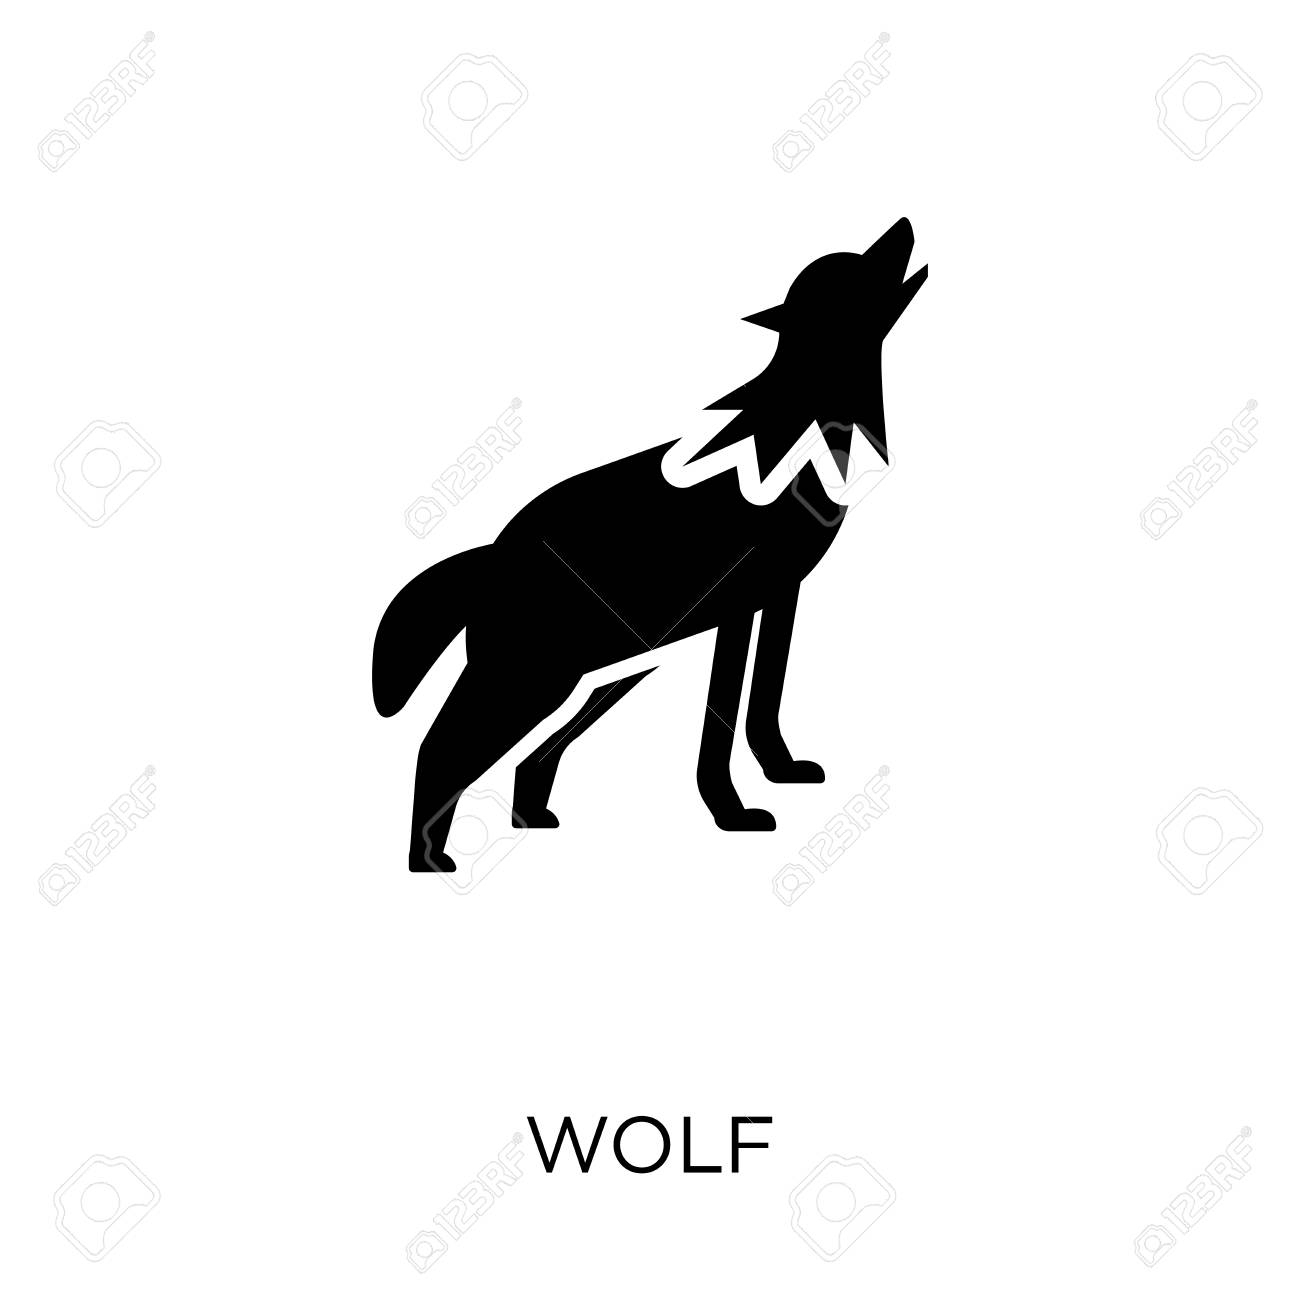 Wolf Icon Wolf Symbol Design From Animals Collection Simple Royalty Free Cliparts Vectors And Stock Illustration Image 111627278 600+ vectors, stock photos & psd files. wolf icon wolf symbol design from animals collection simple